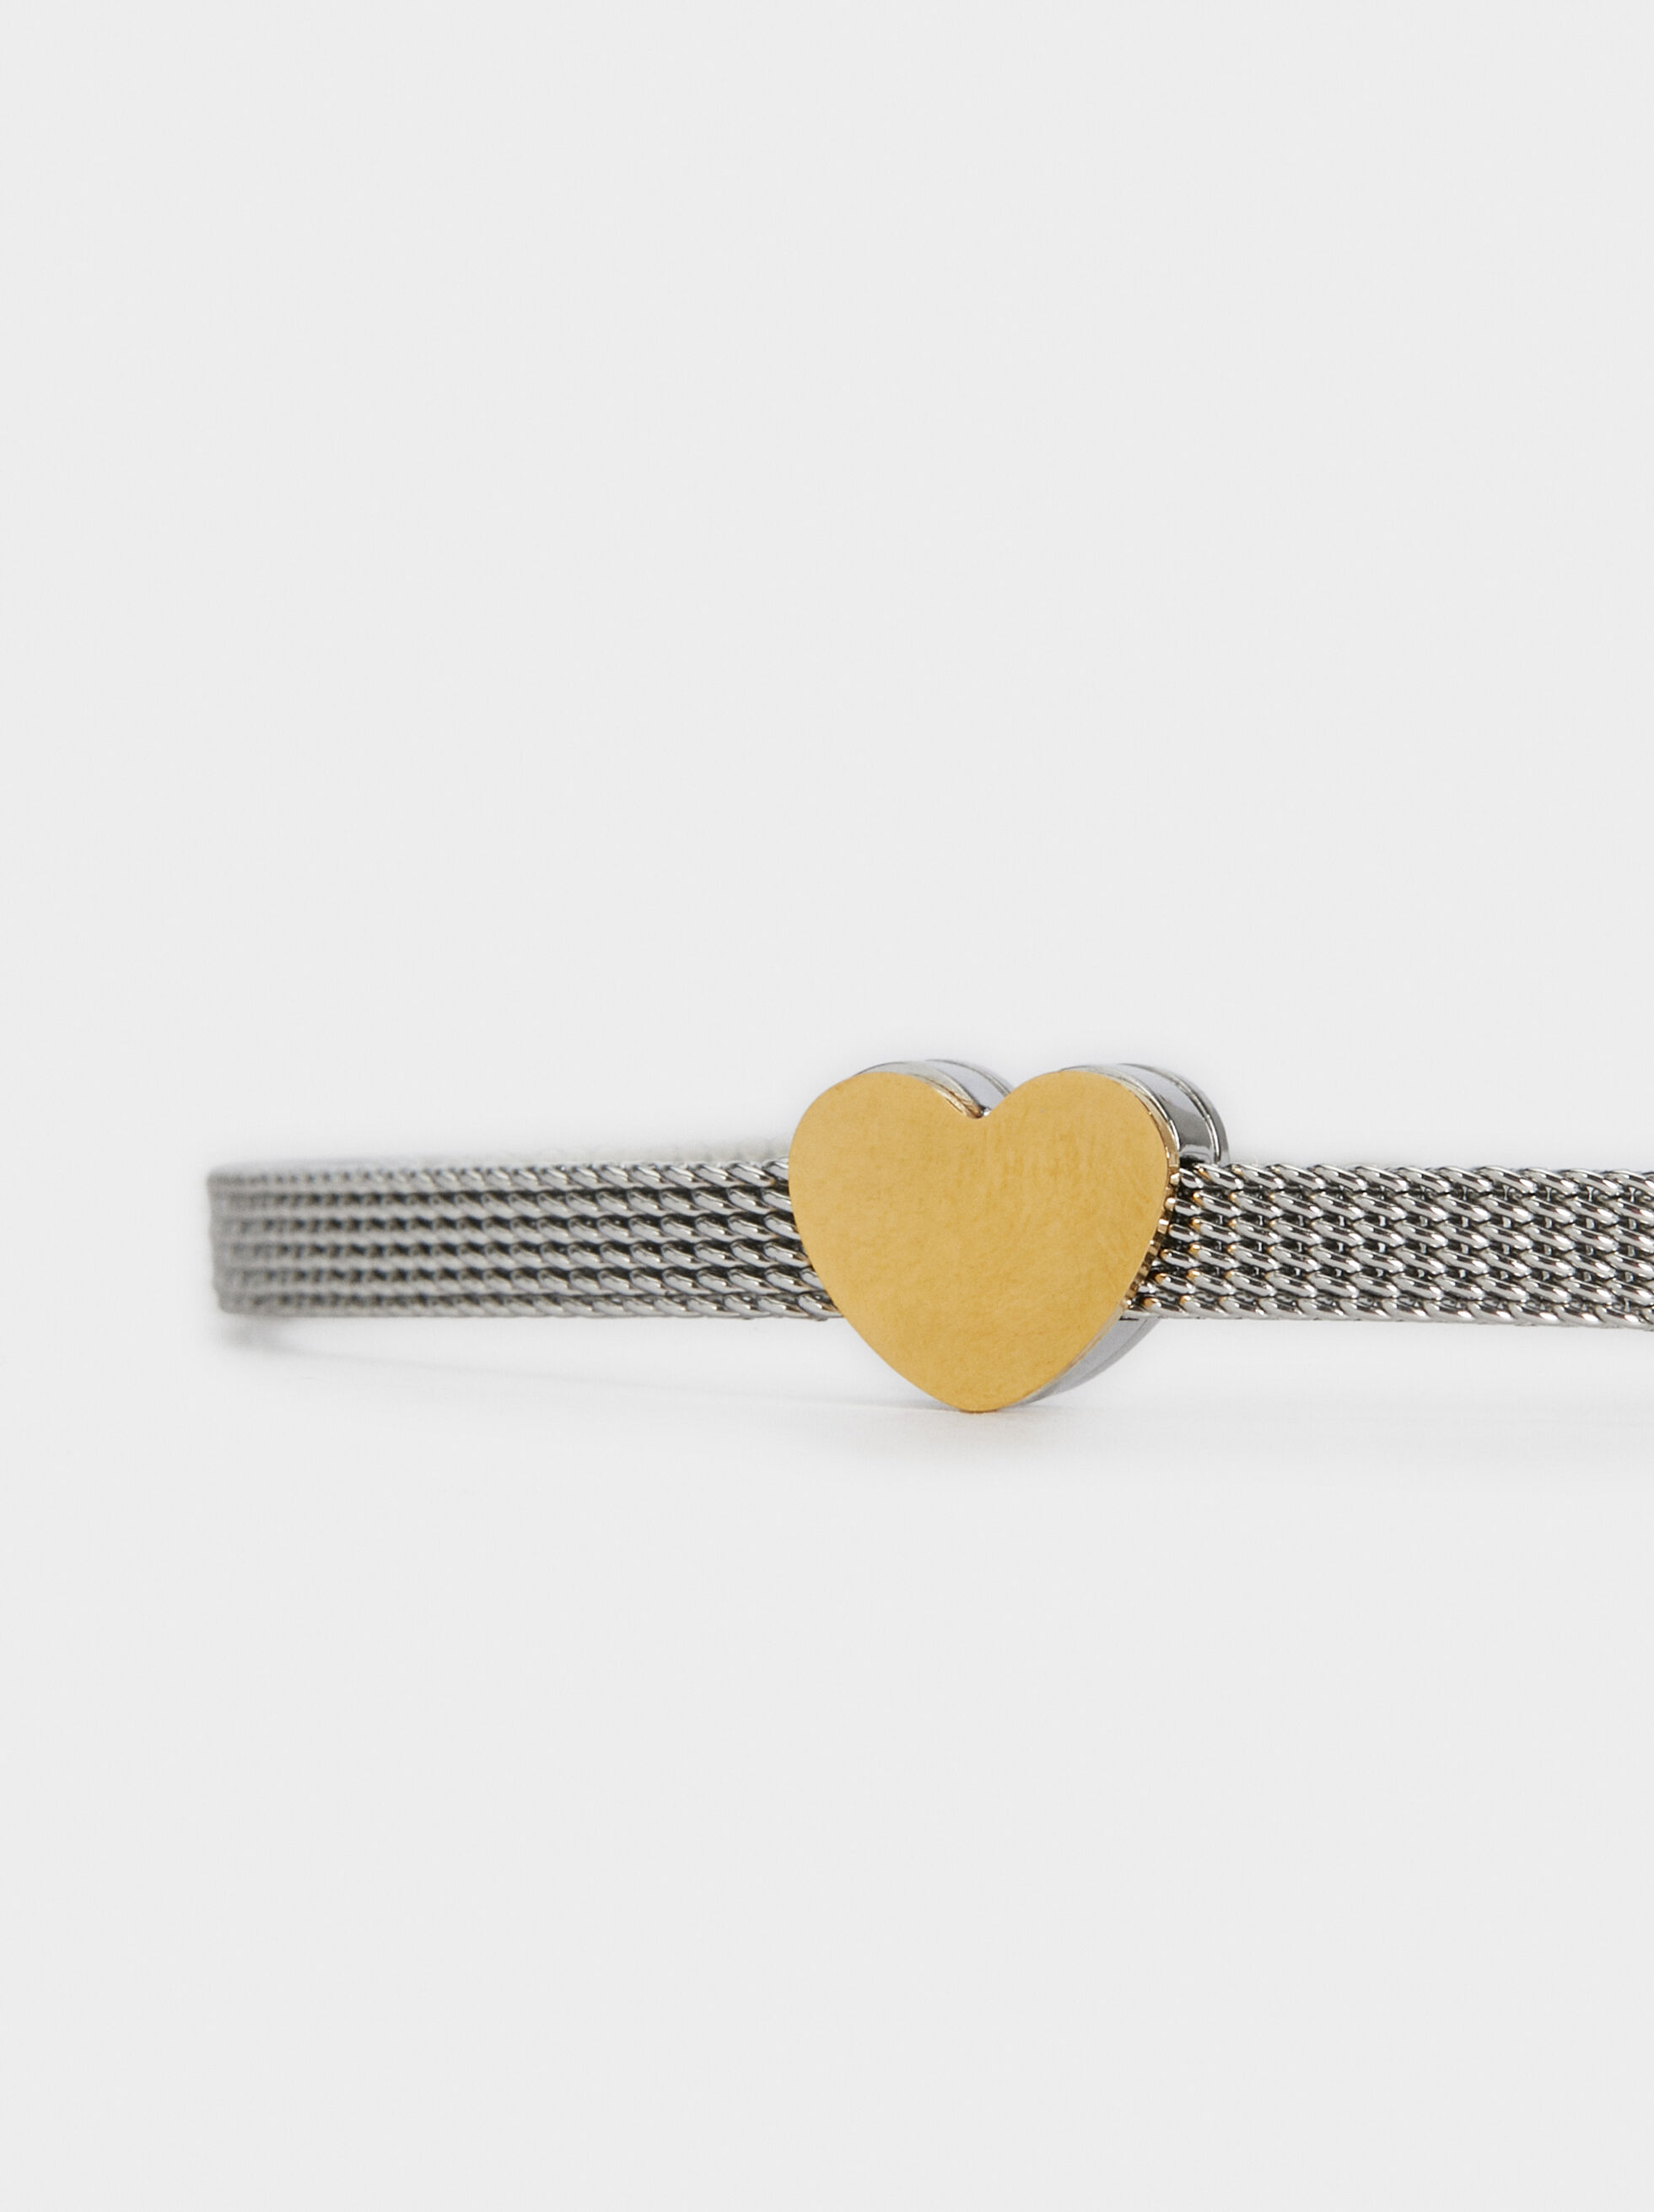 Steel Arm Cuff With Heart, Multicolor, hi-res